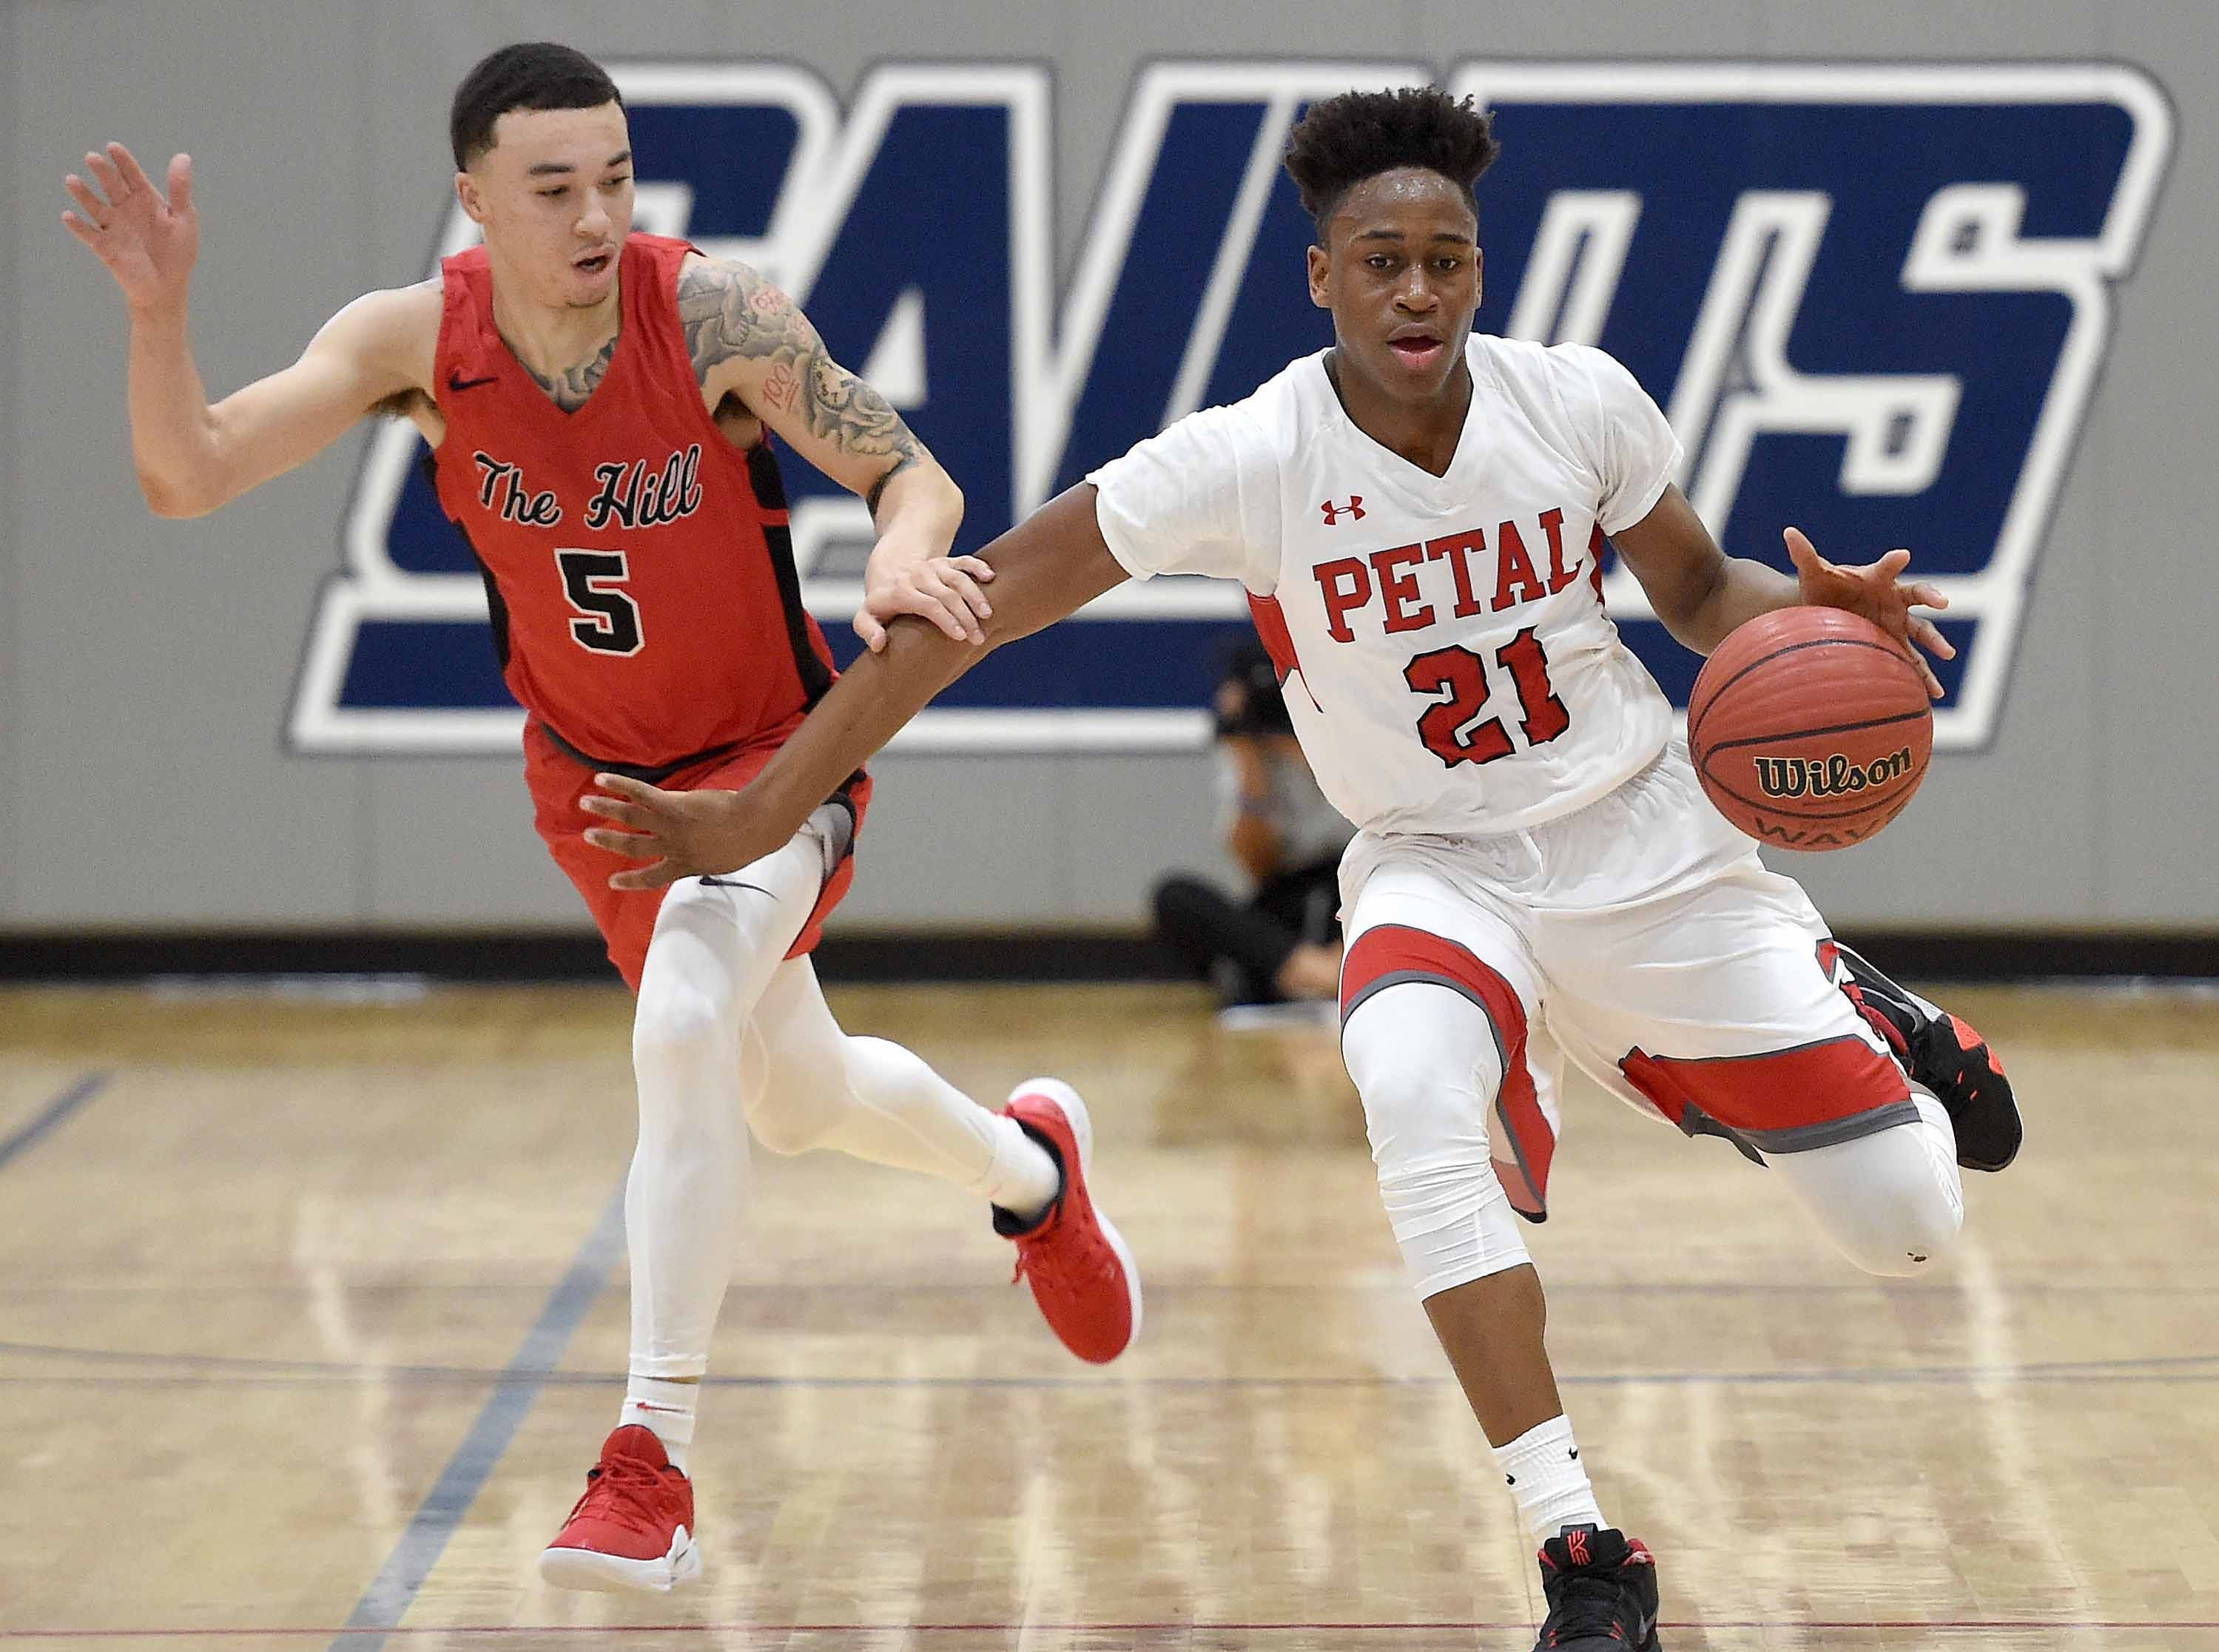 Petal's Don Avila (21) brings the ball up against Center Hill's Calvin Temple (5) on Monday, January 21, 2019, at the Rumble in the South high school basketball tournament at St. Andrew's Episcopal School in Ridgeland, Miss.